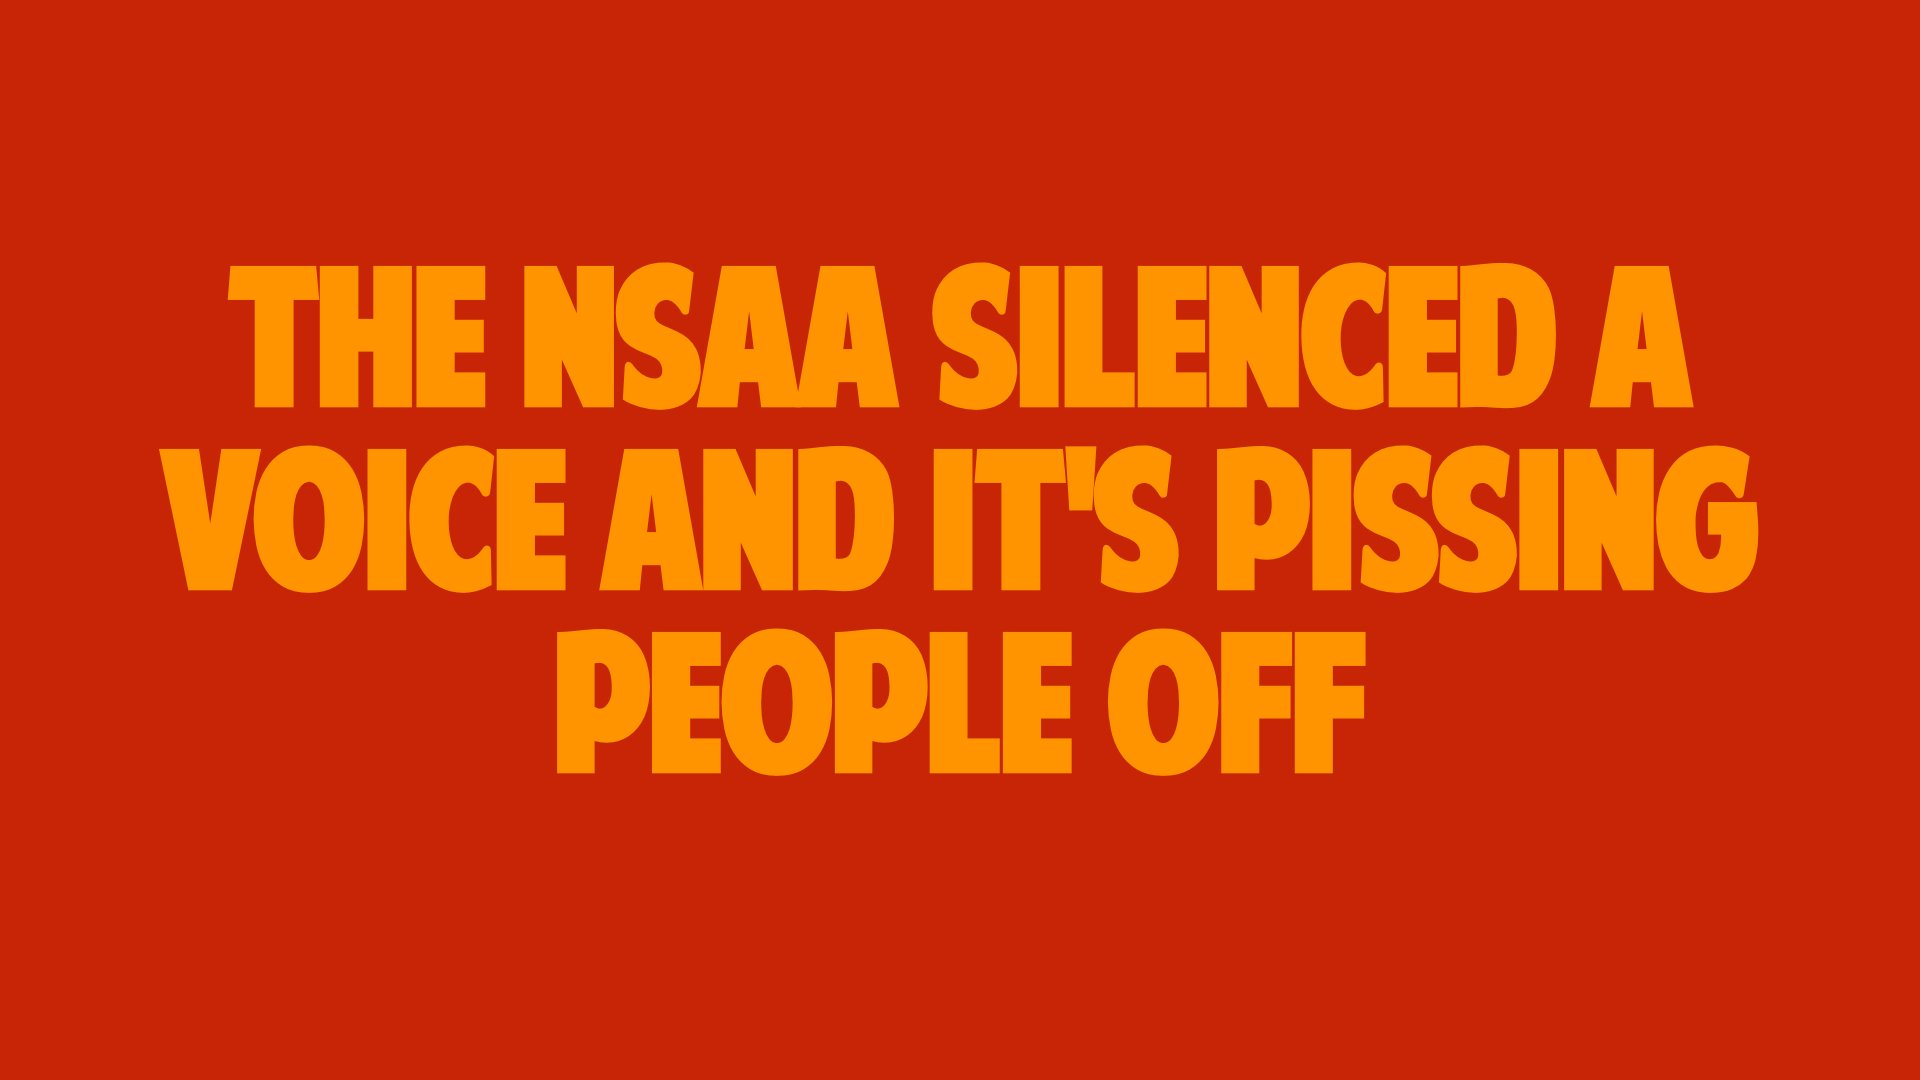 The NSAA Silenced a Voice and it's Pissing People Off